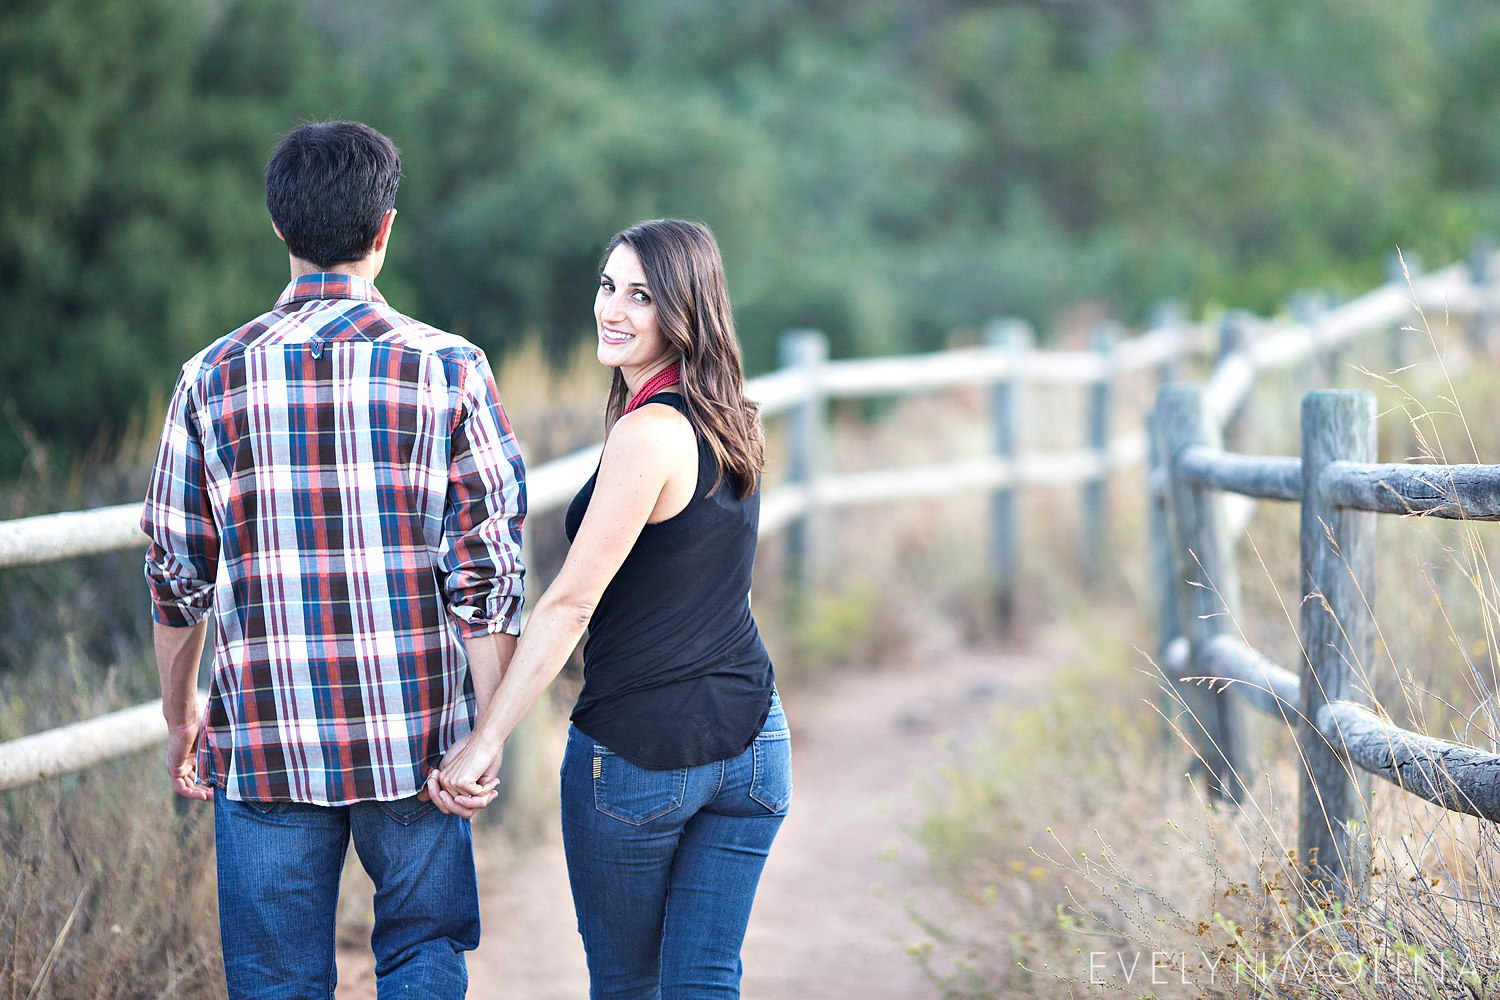 Mission Trails Engagement - Evelyn Molina Photography_010.jpg